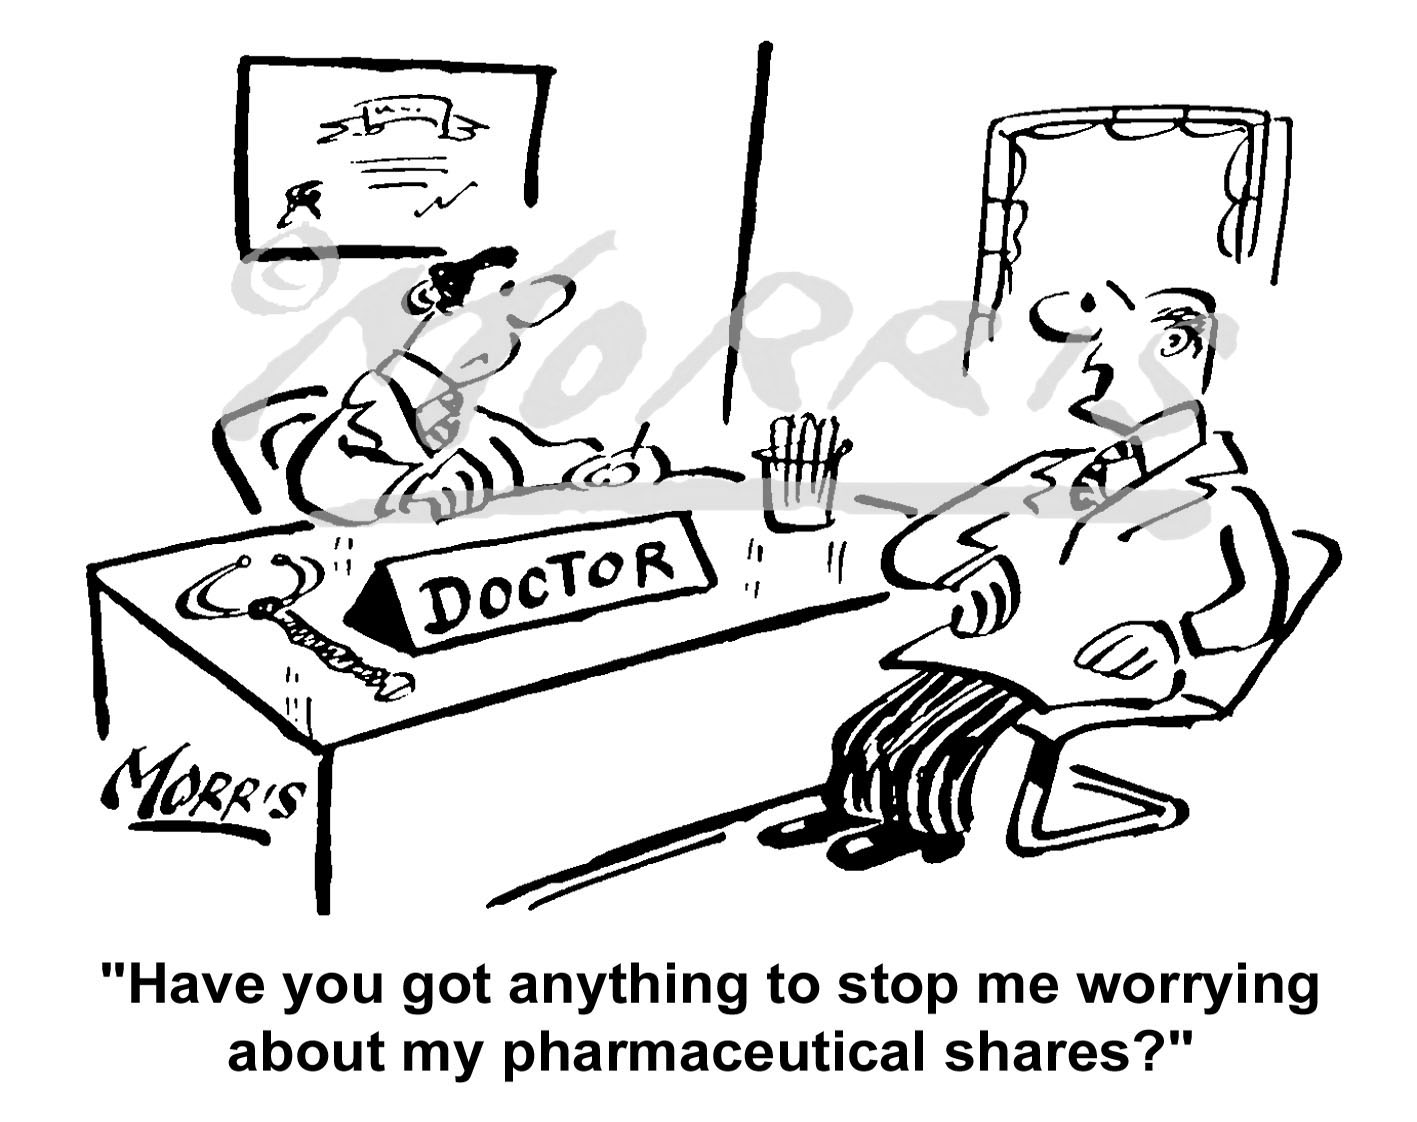 Stock market shares cartoon, medical cartoon, doctor comic Ref: 1722bw